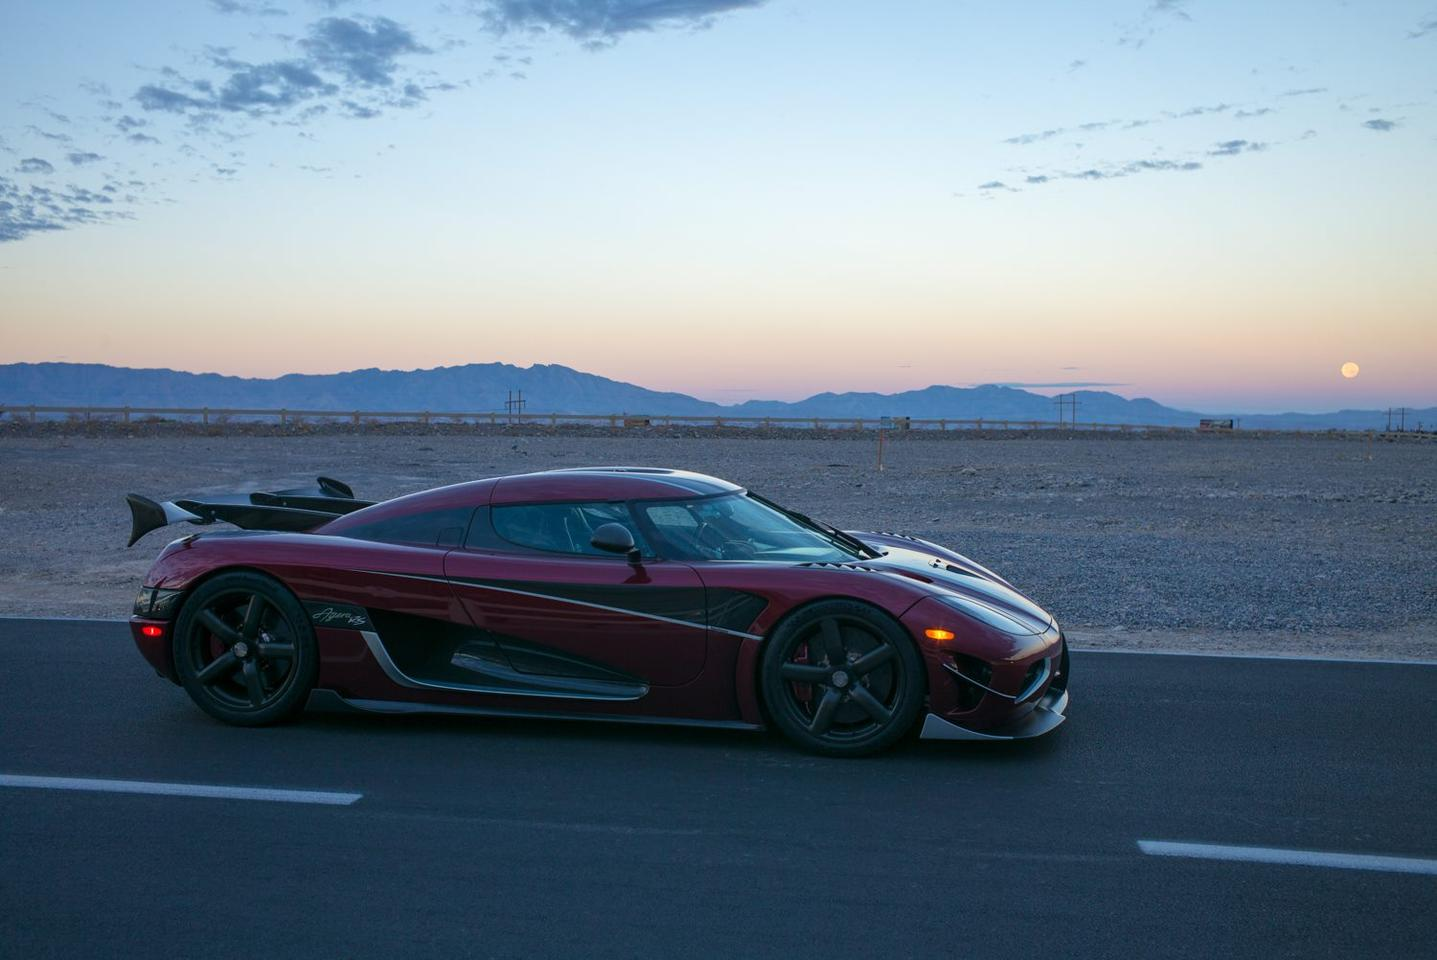 Koenigsegg's record-setting Agera RS on the road in Nevada